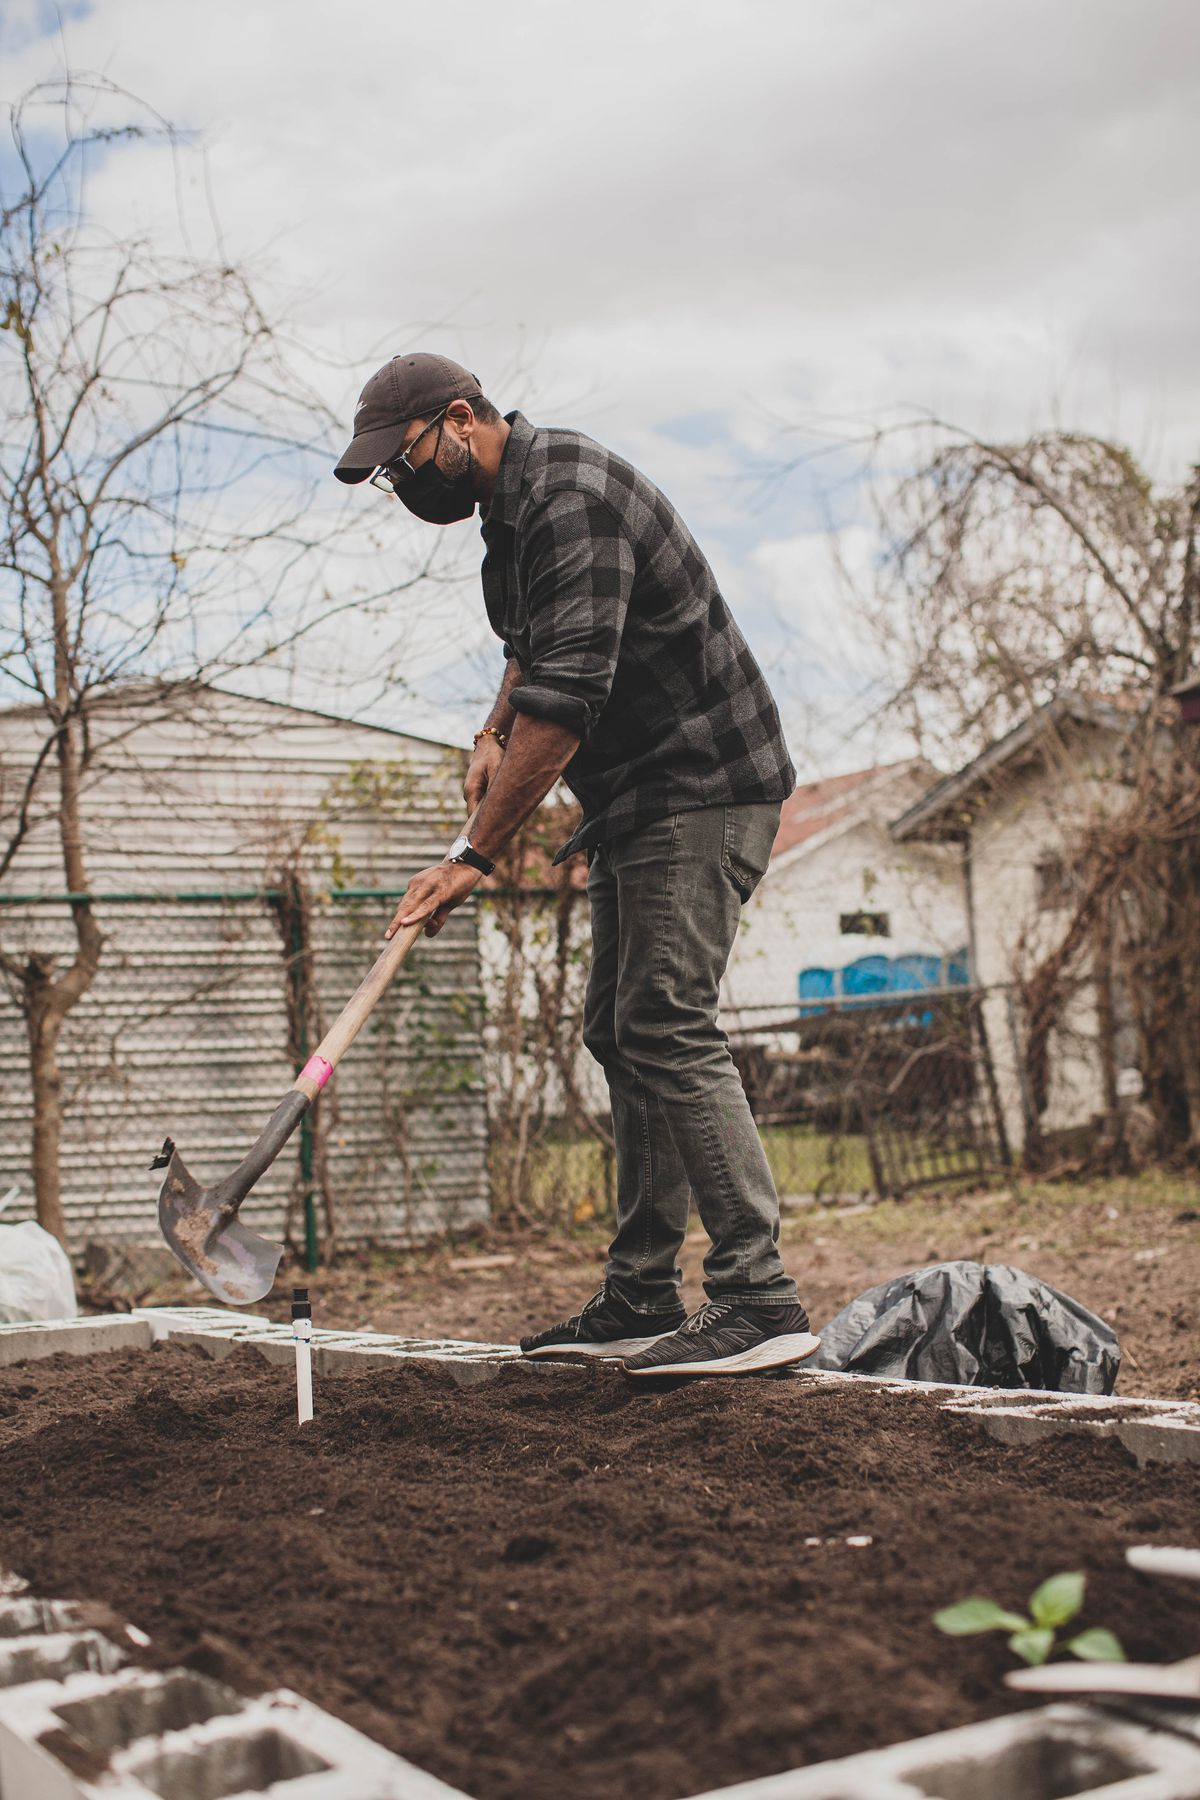 A man in a black-and-grey plaid shirt uses a shovel to spread soil in a raised garden bed